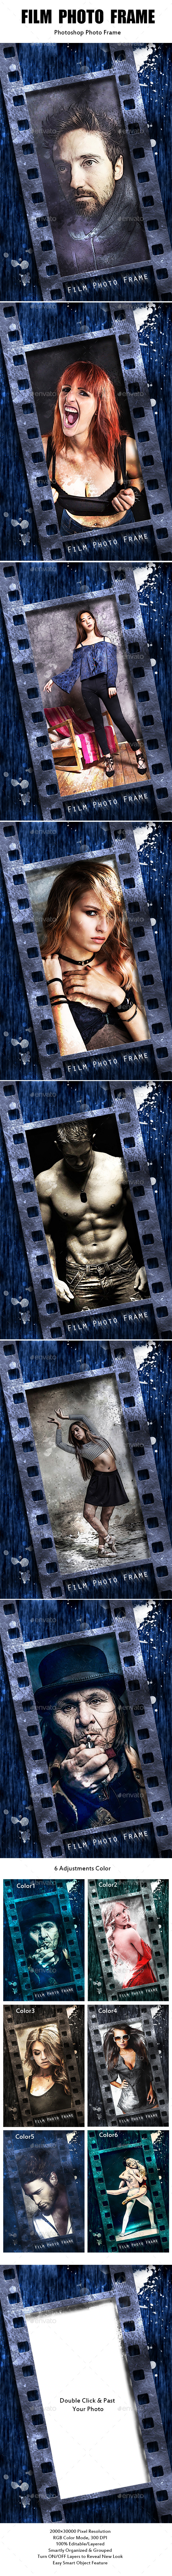 Film Photo Frame - Photo Templates Graphics